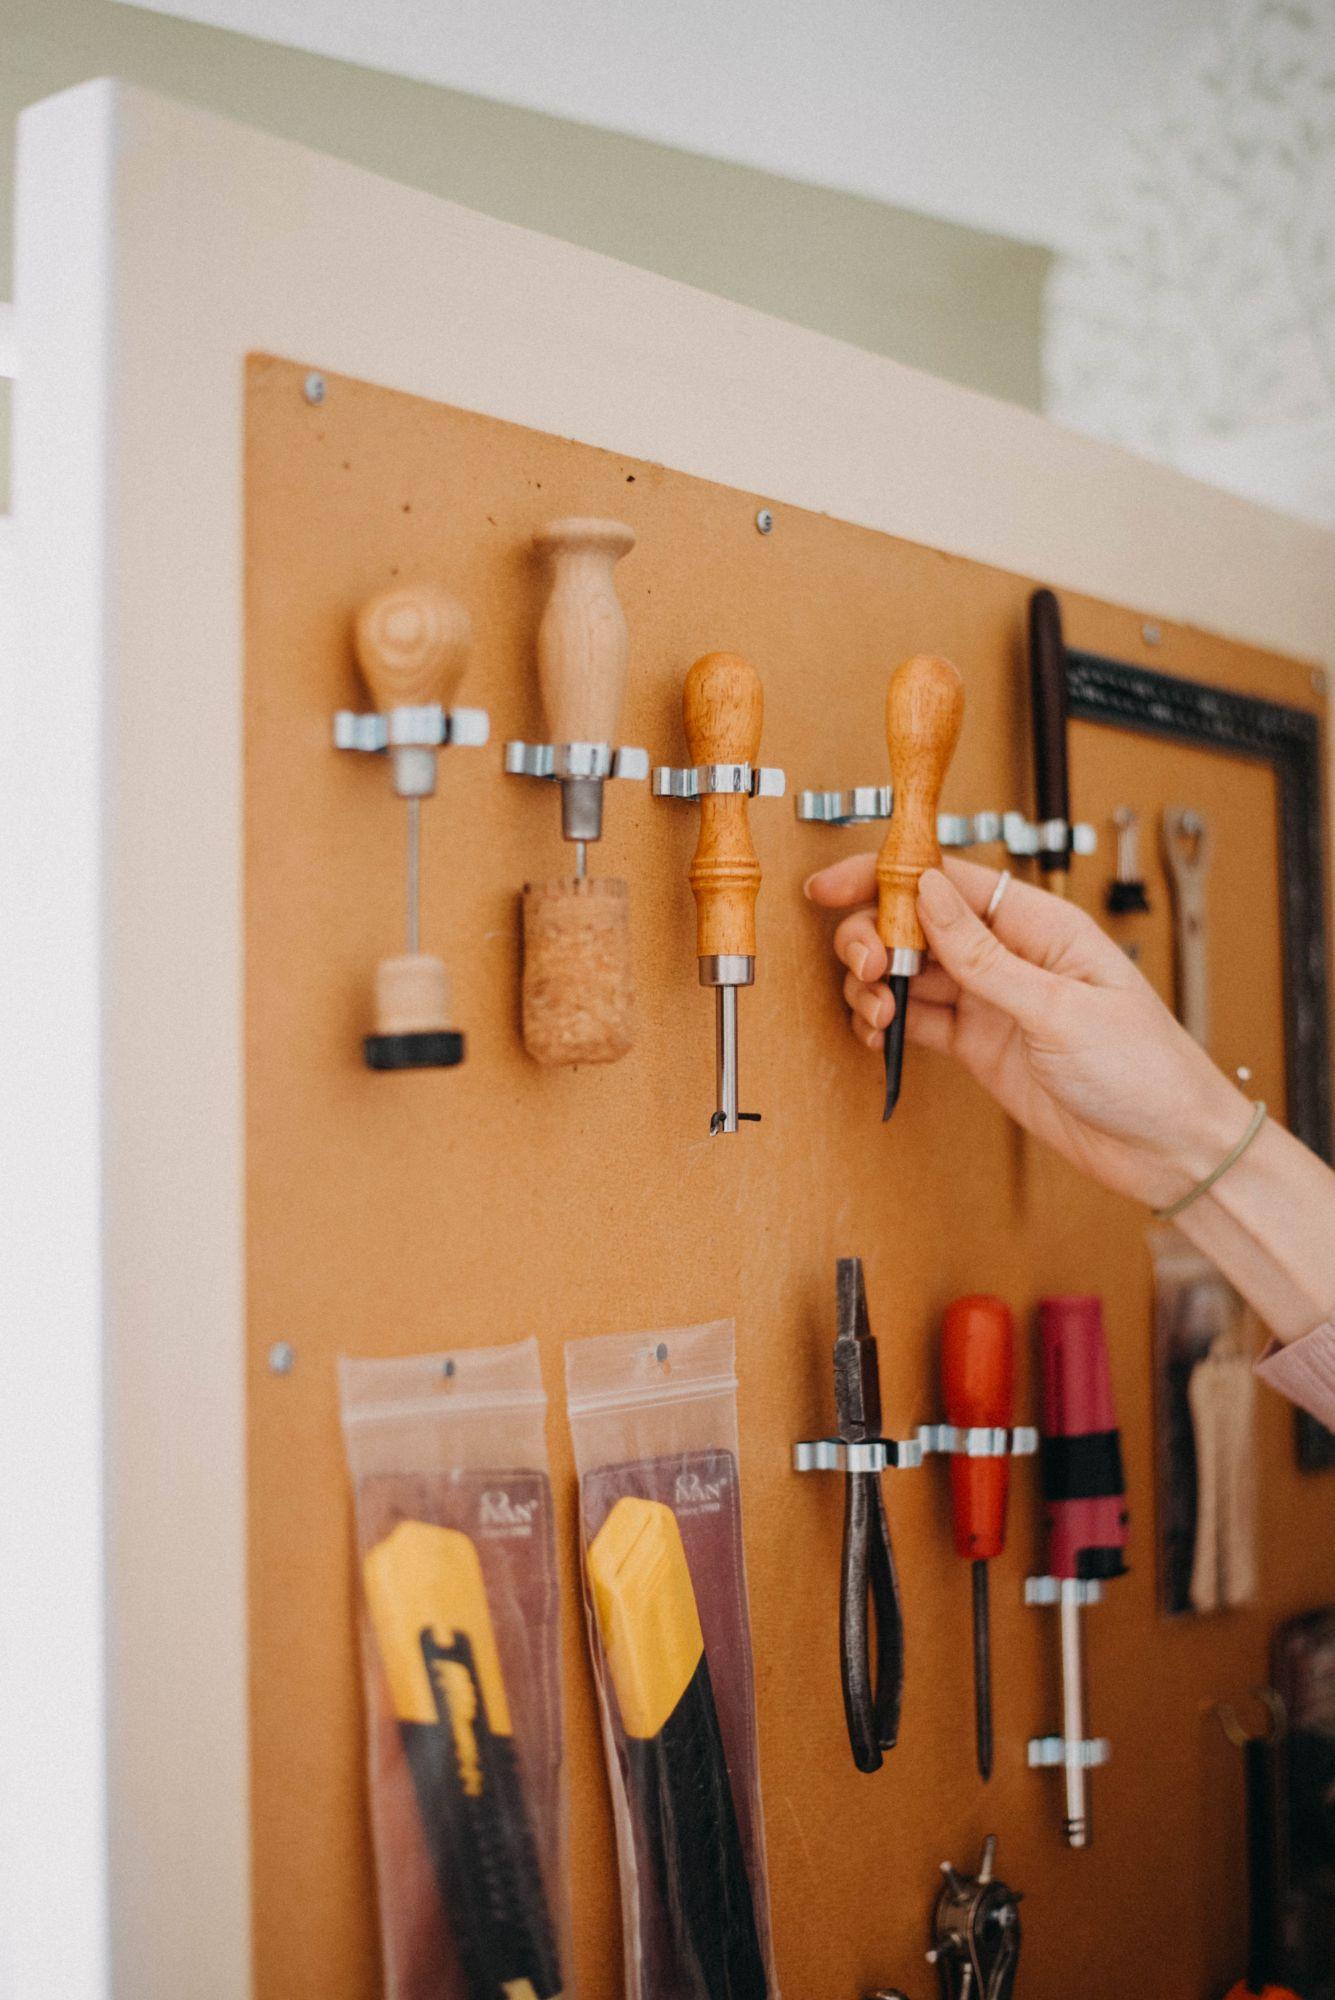 leather craft tools, based in derbyshire